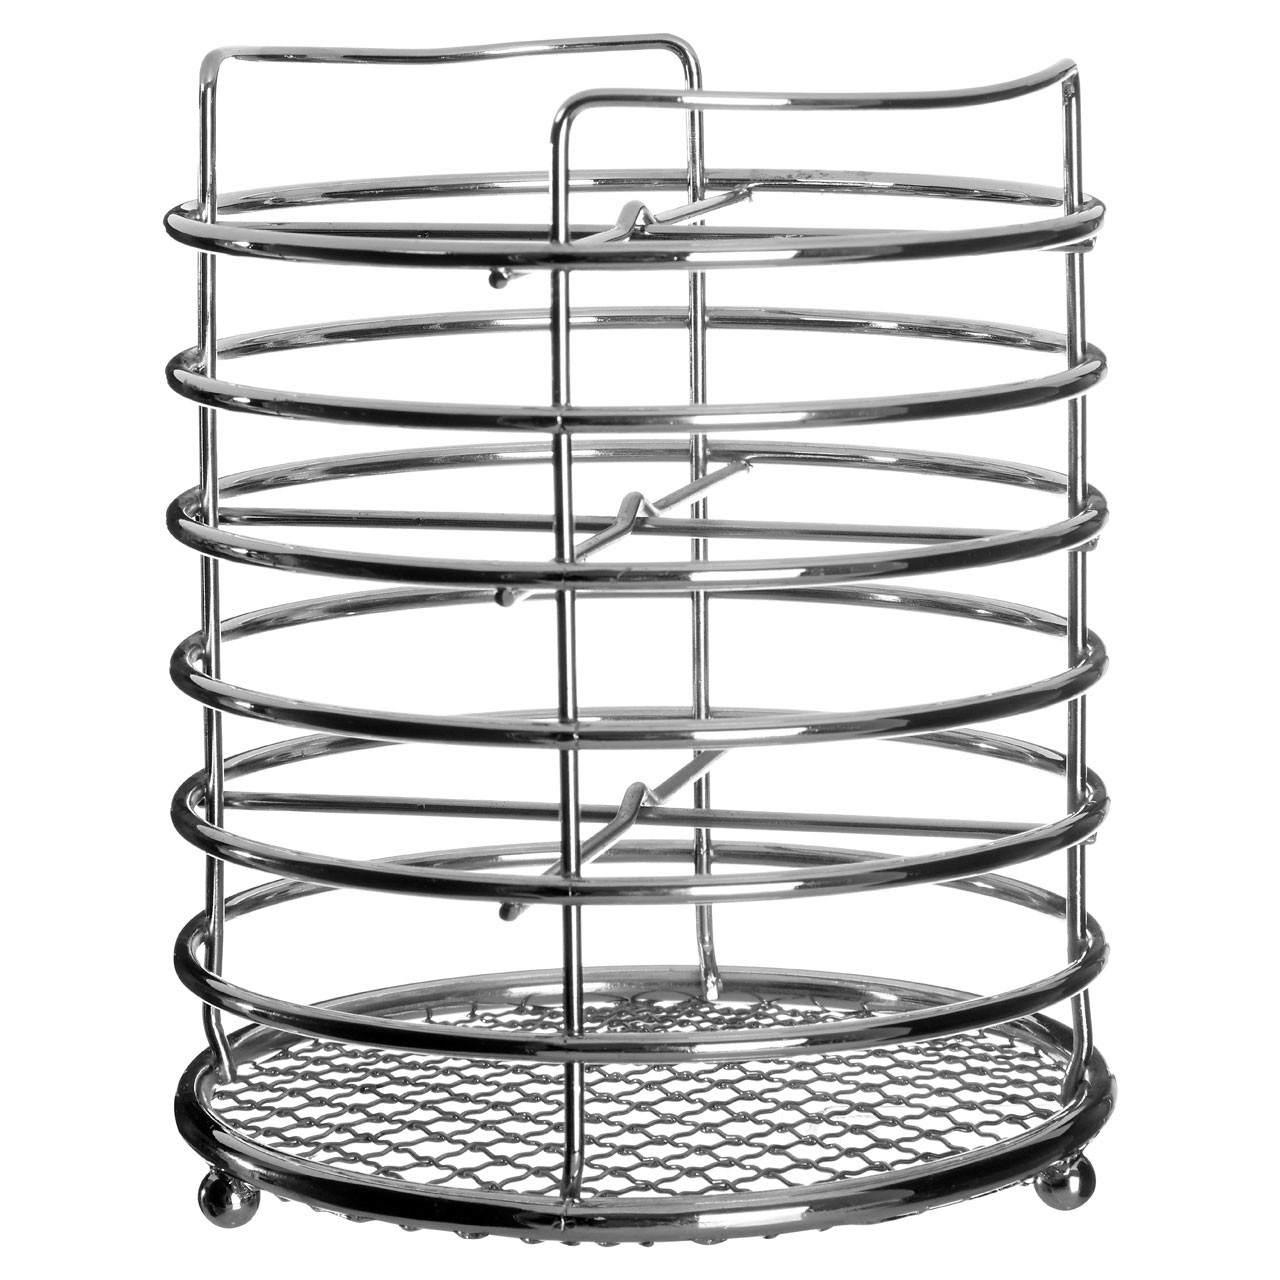 Cutlery Caddy - Chrome